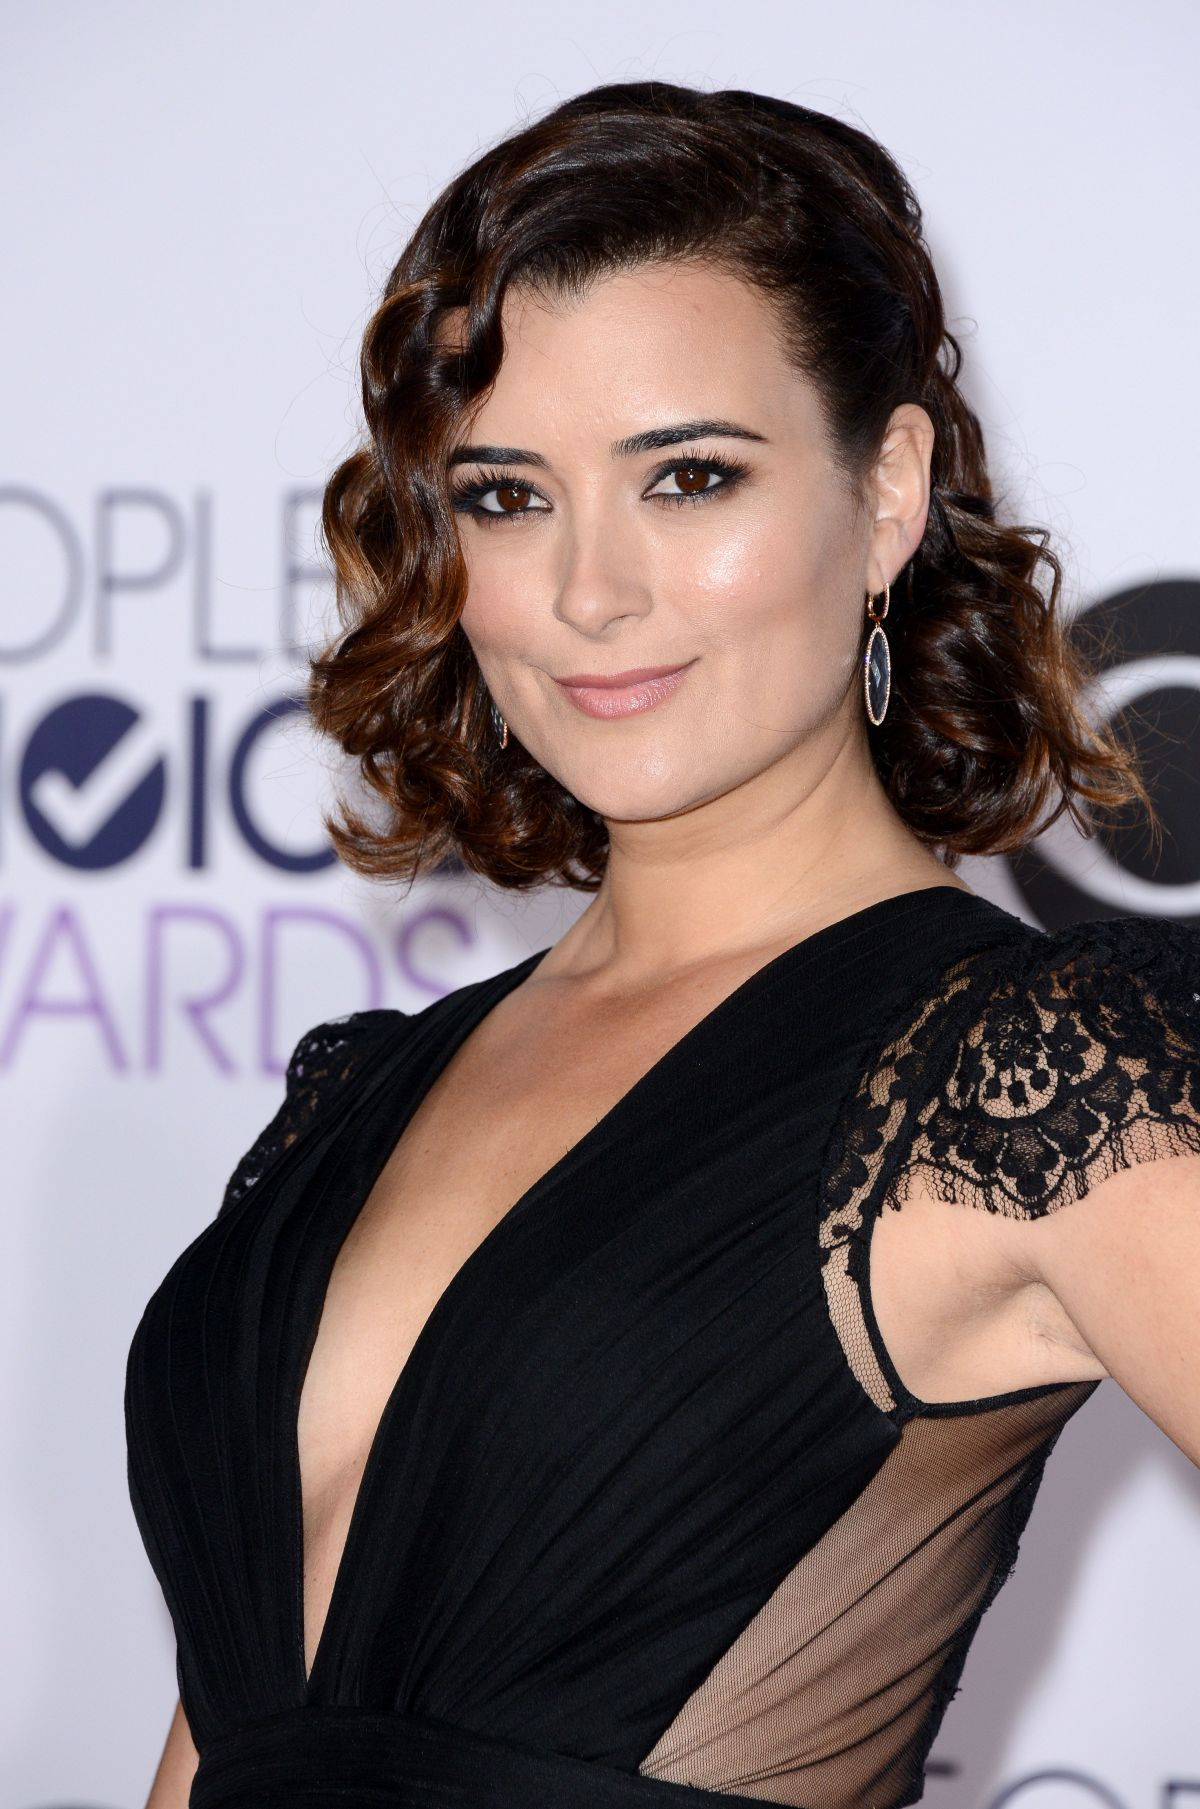 COTE DE PABLO at 2015 People